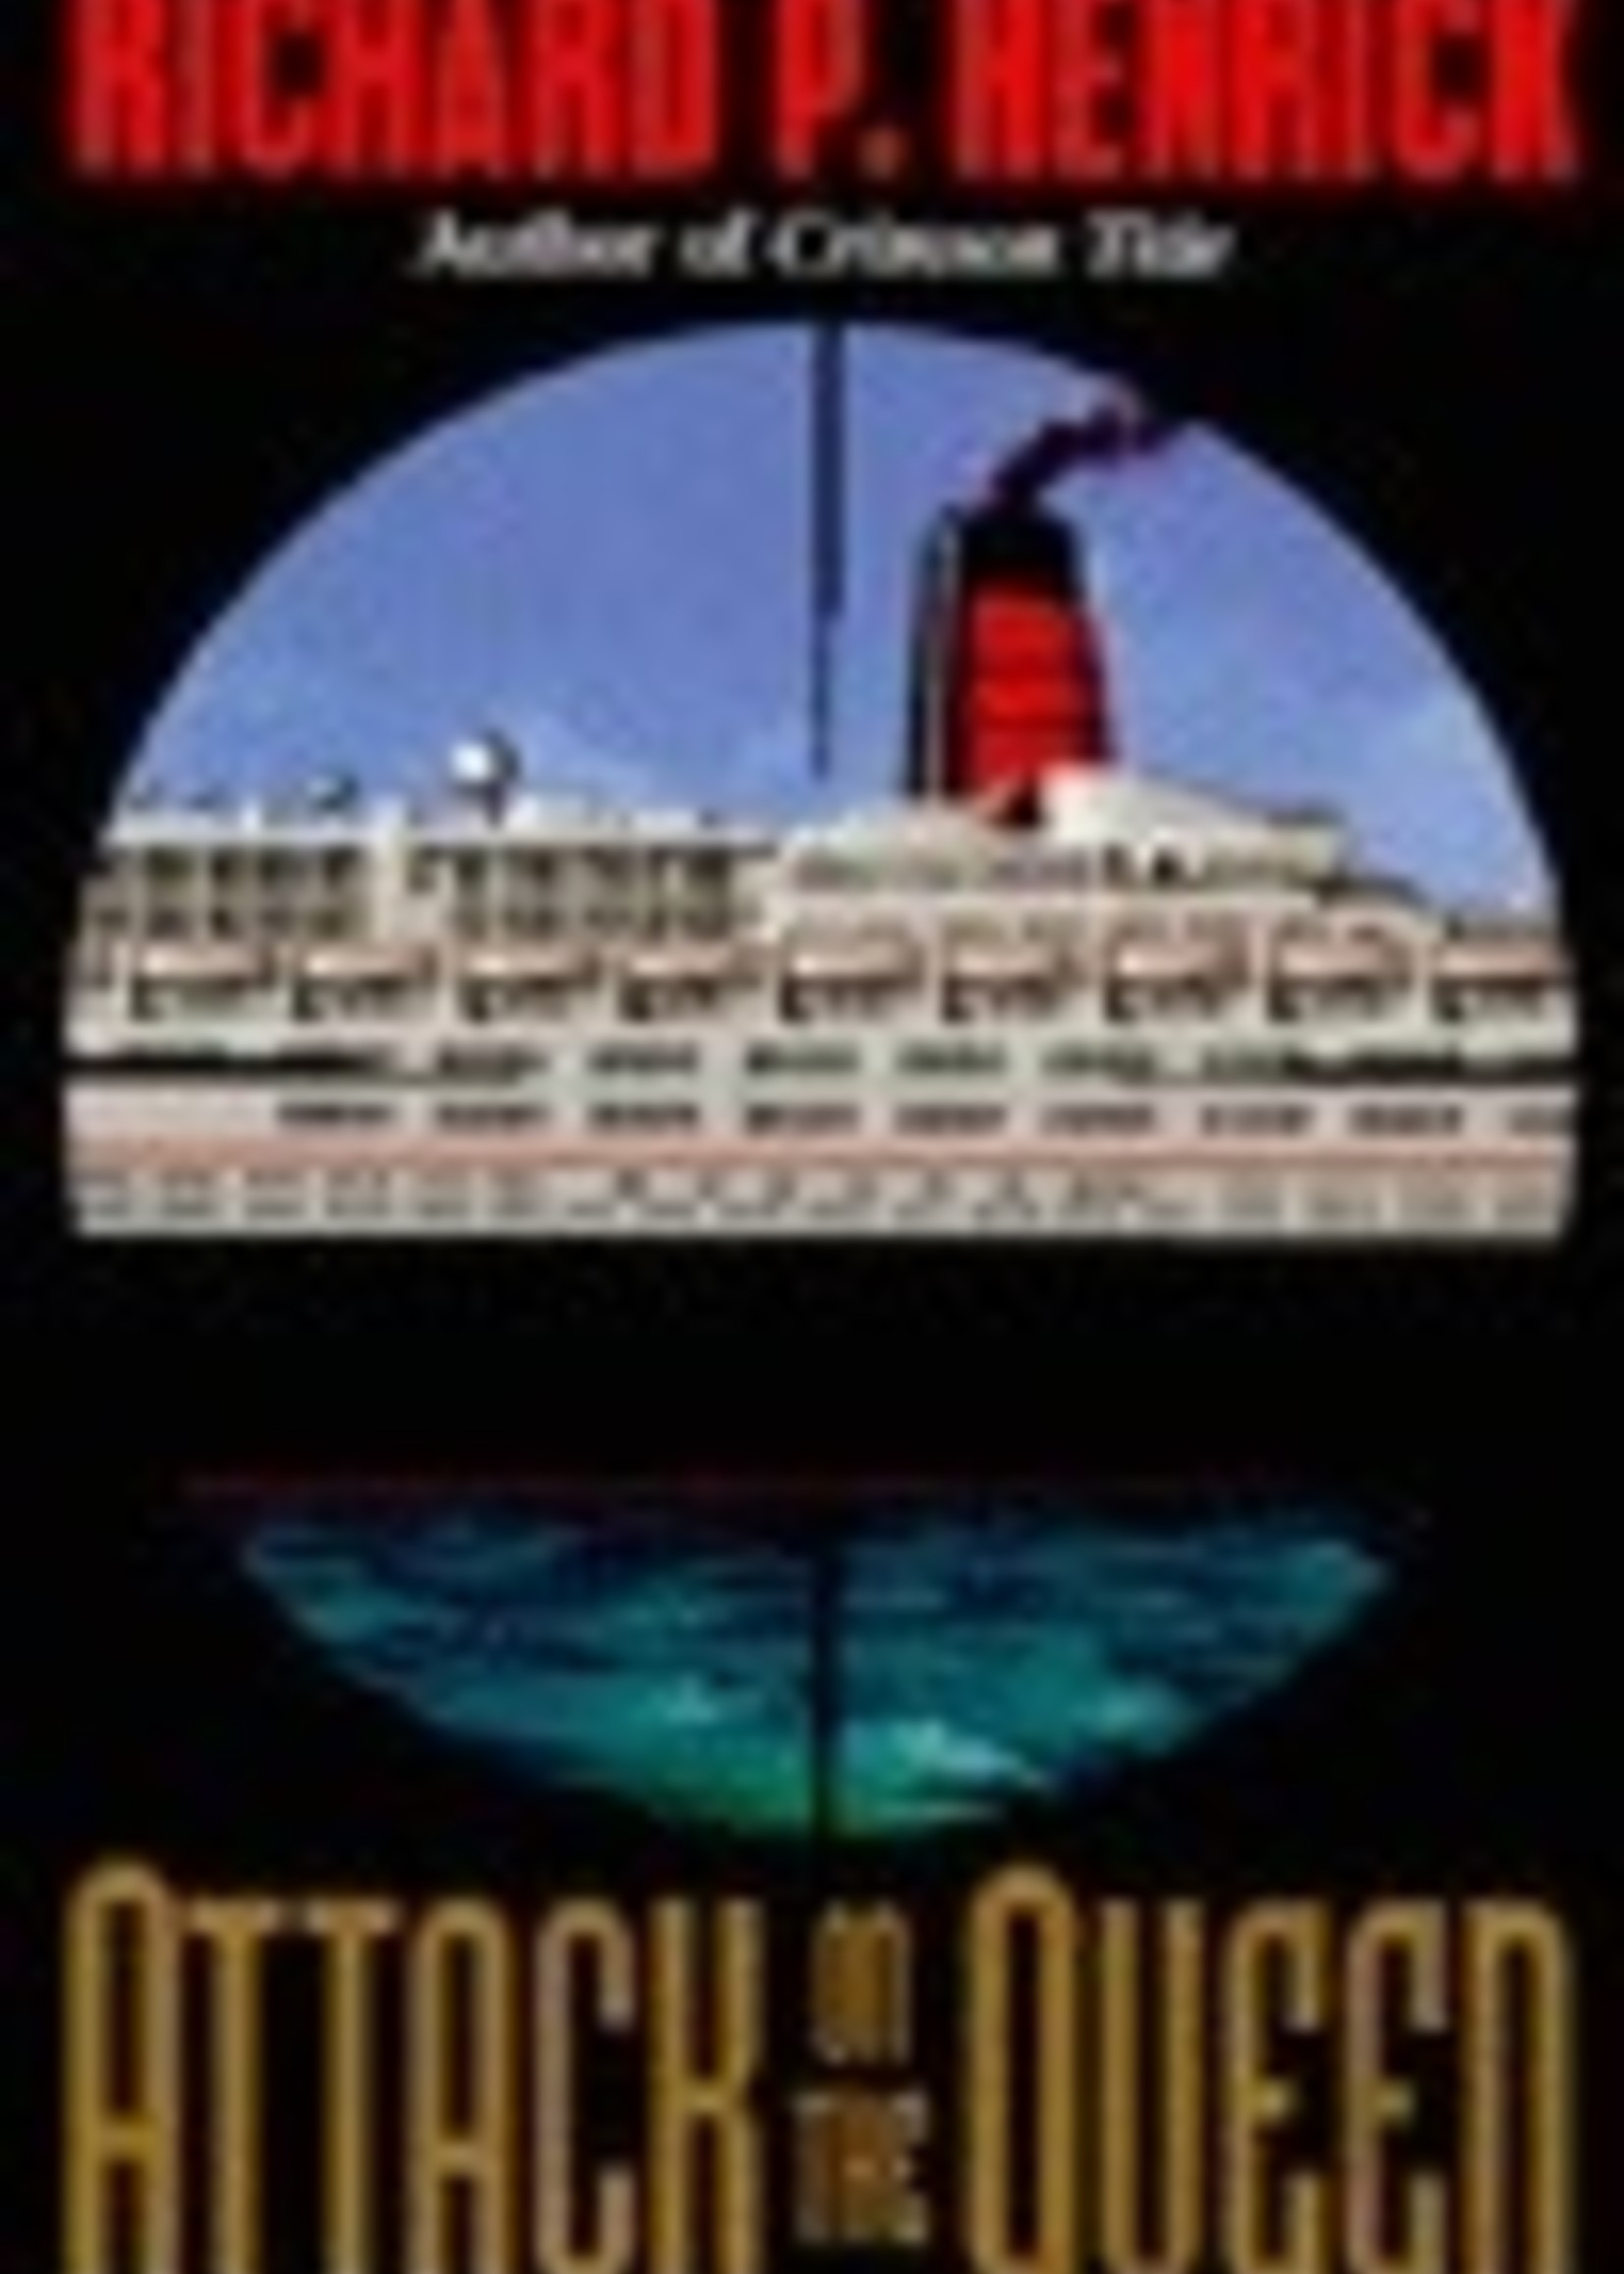 USED - Attack on the Queen by Richard P. Henrick